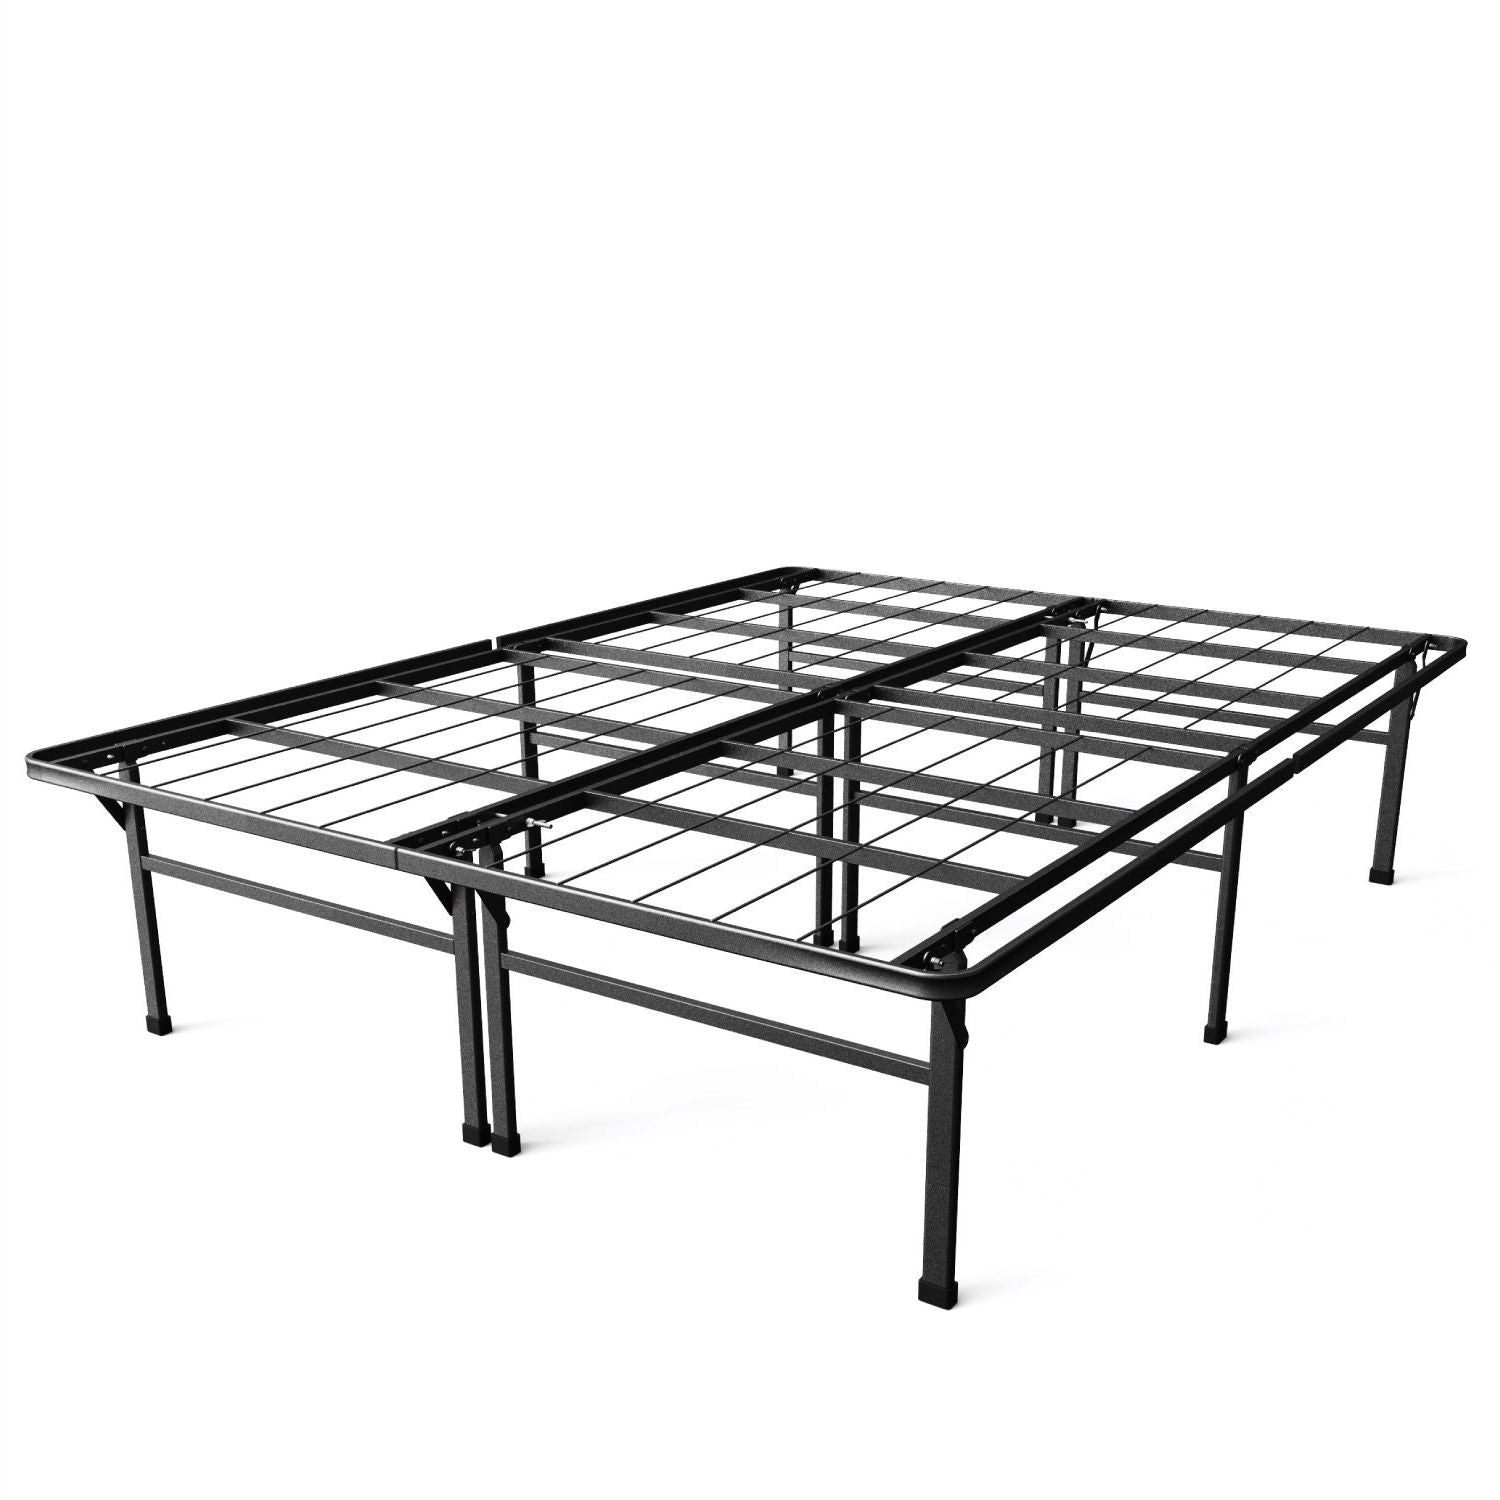 King size 18-inch High Rise Metal Platform Bed Frame